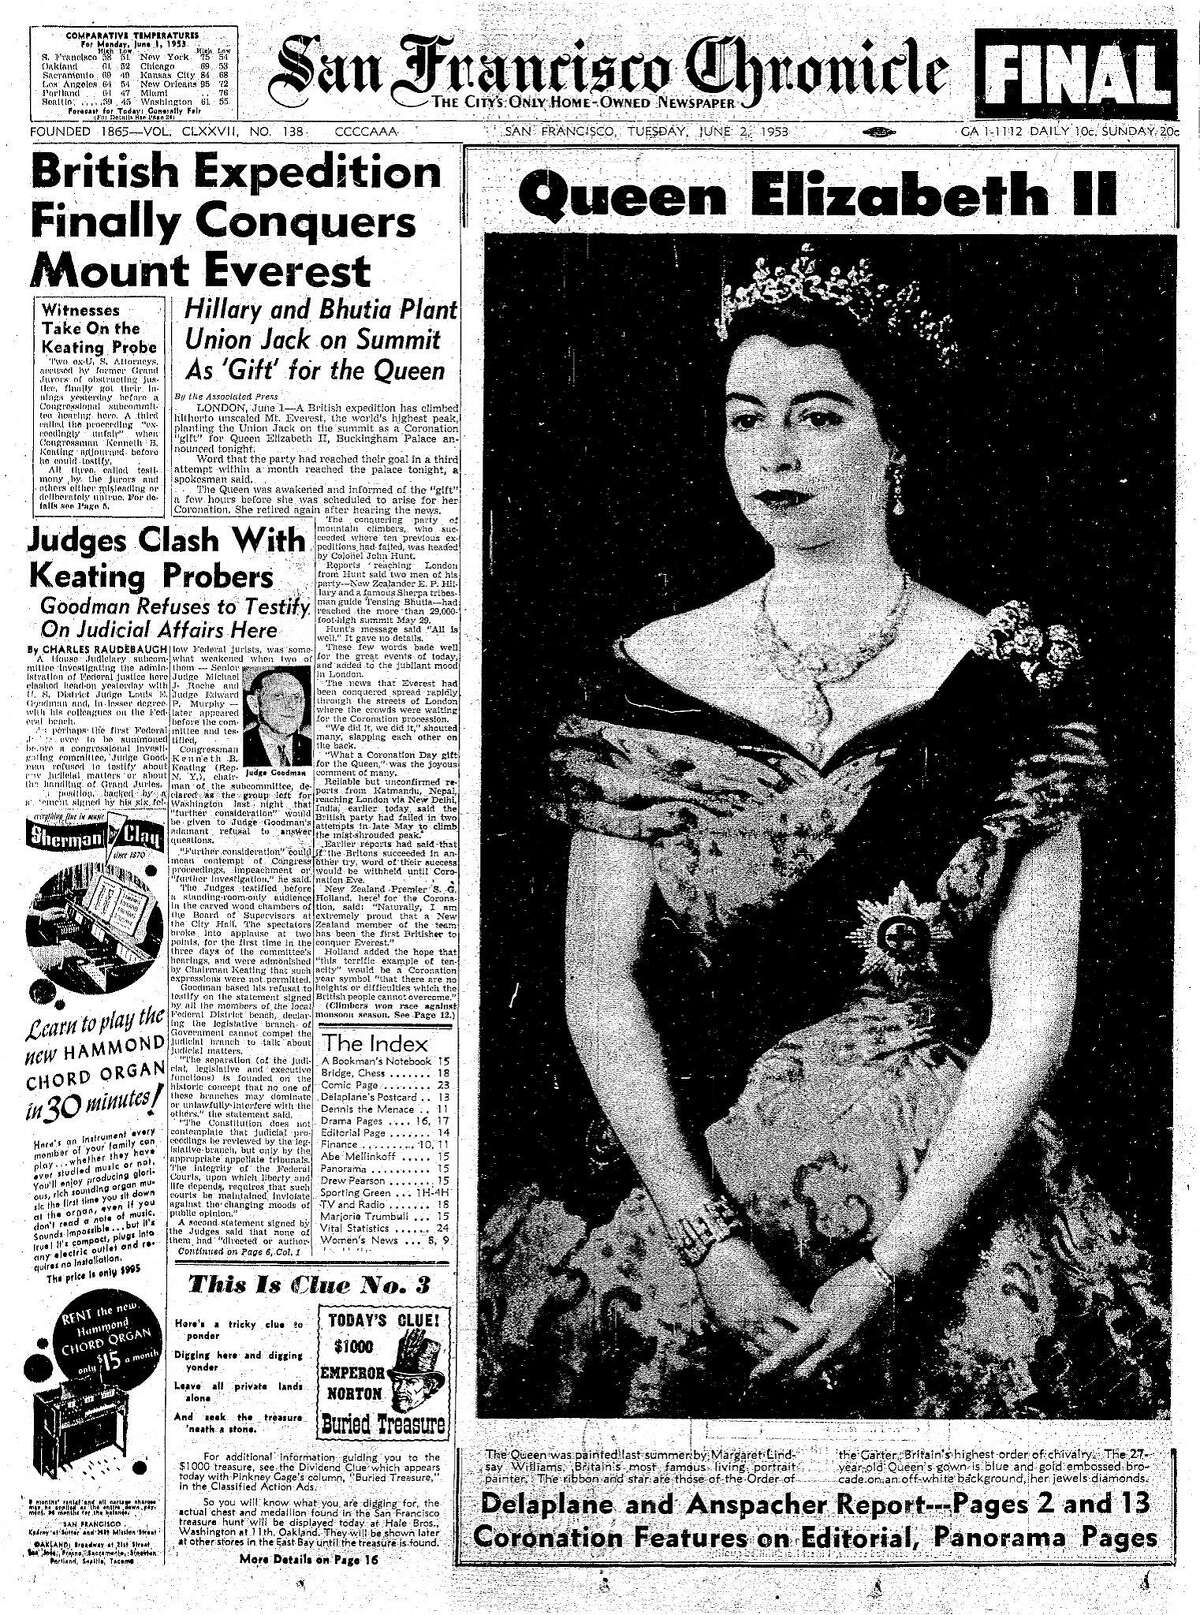 Historic Chronicle Front Page June 02, 1955 Queen Elizabeth ascends the throne in Great Britain Chron365, Chroncover